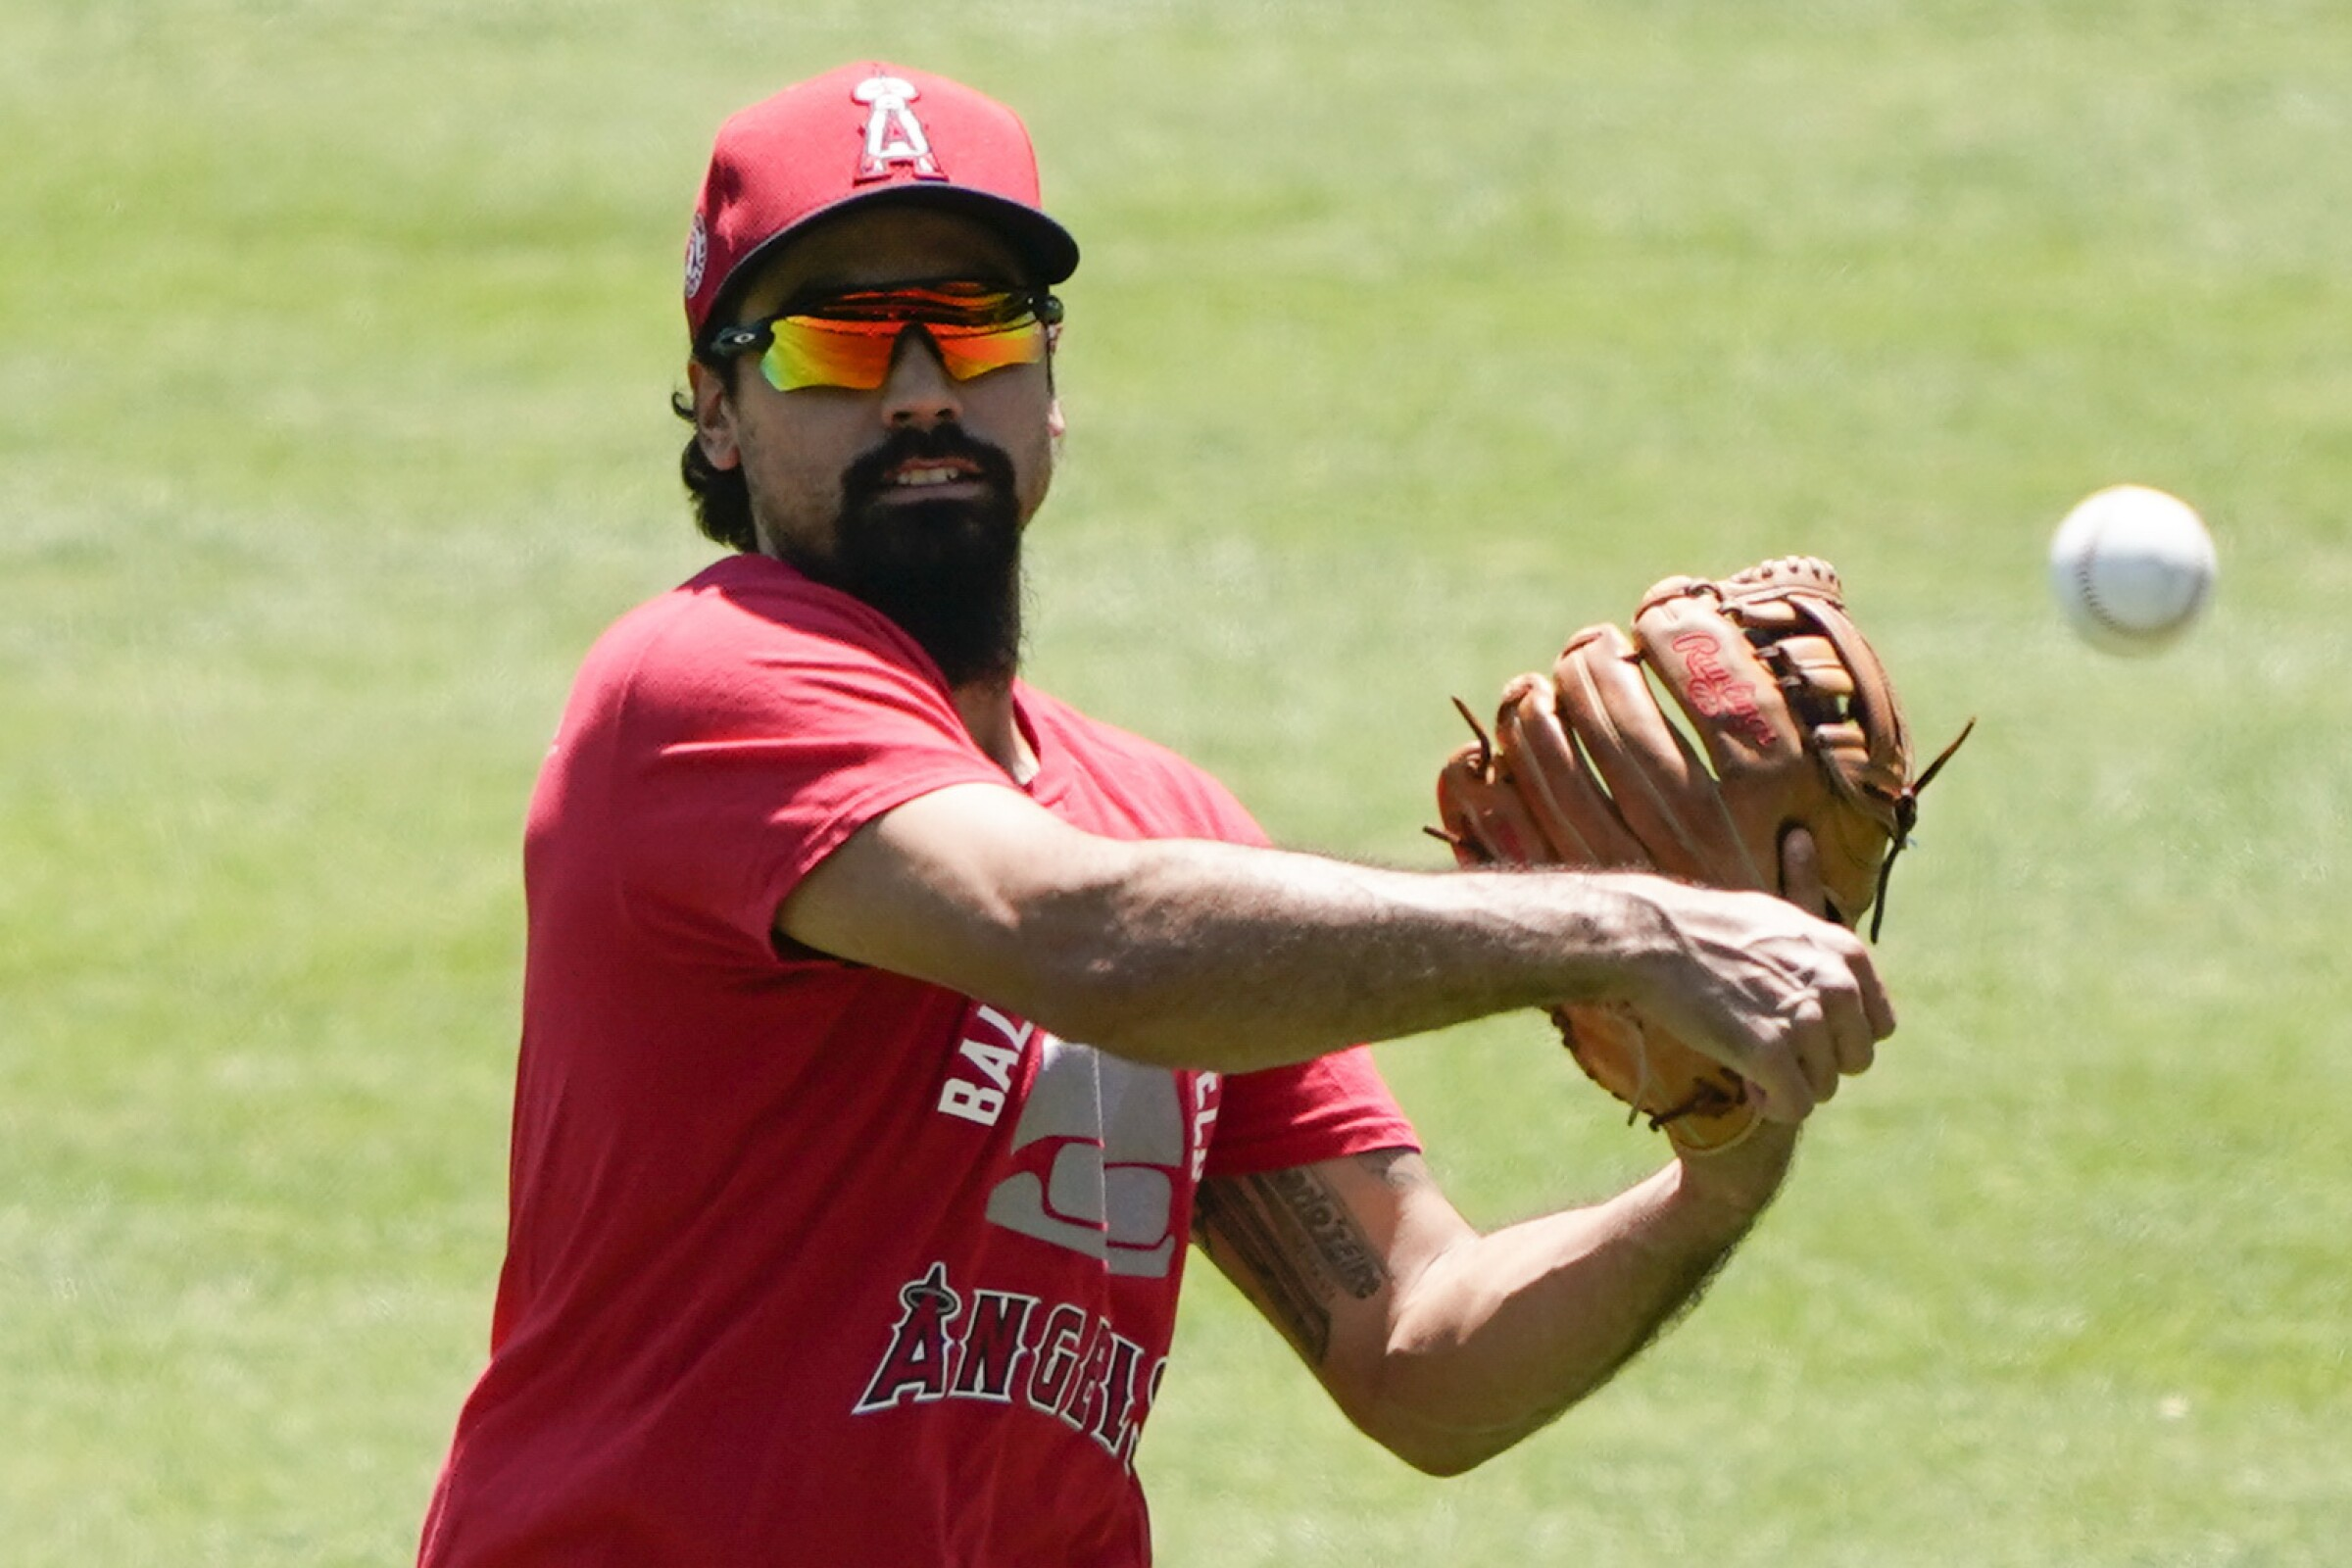 Los Angeles Angels third baseman Anthony Rendon throws during practice.